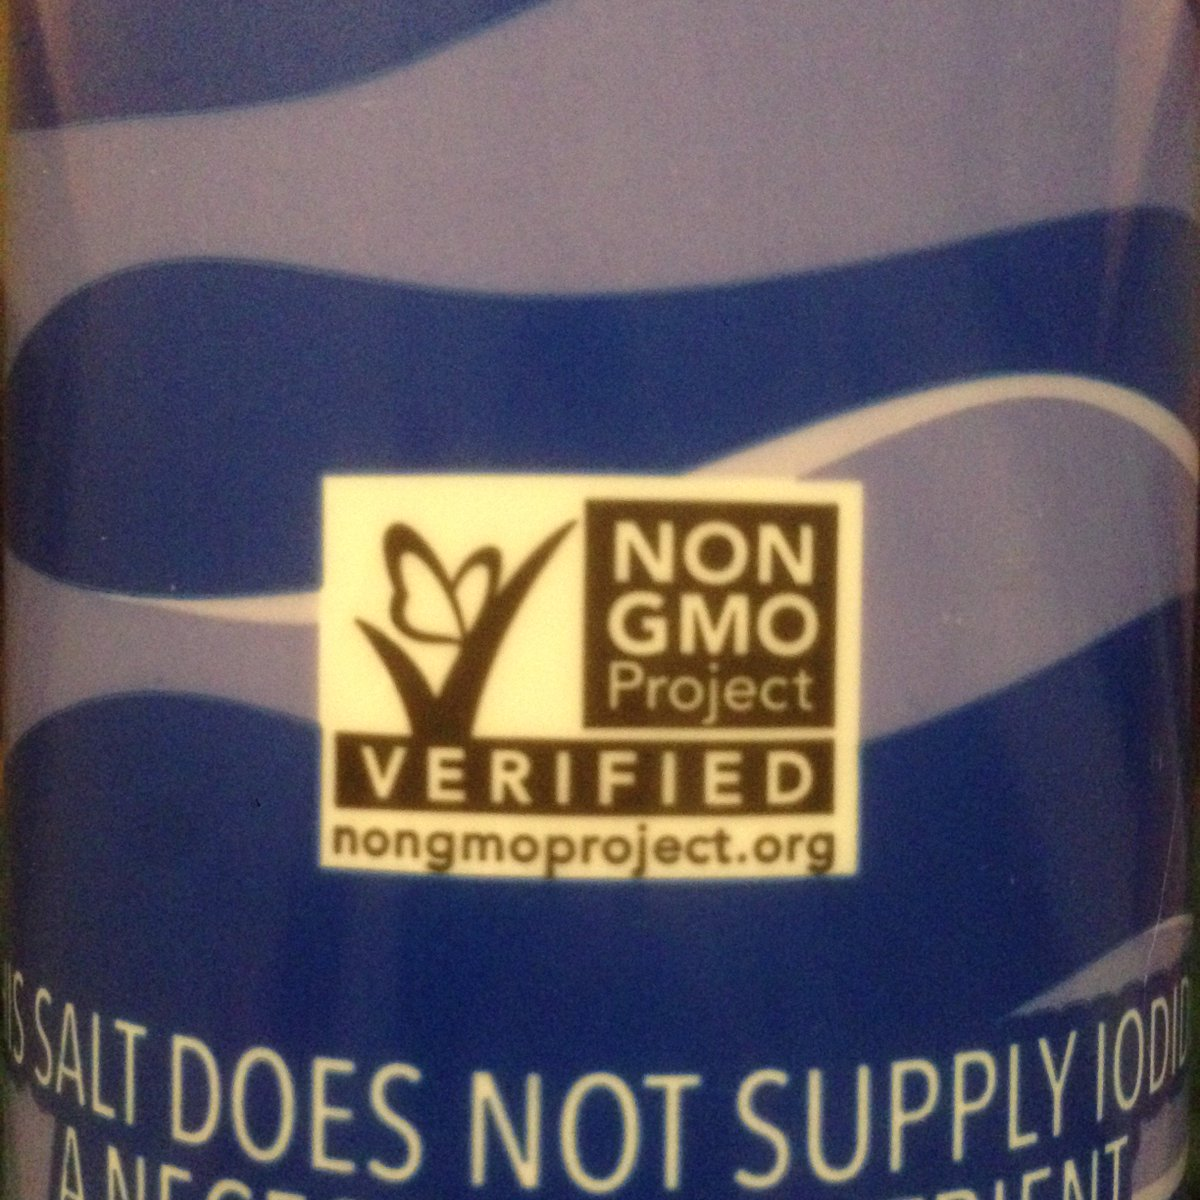 This salt is claimed to be non-GMO but I sequenced it and none of the reads mapped to the salt genome https://t.co/AuAEFmHPRM